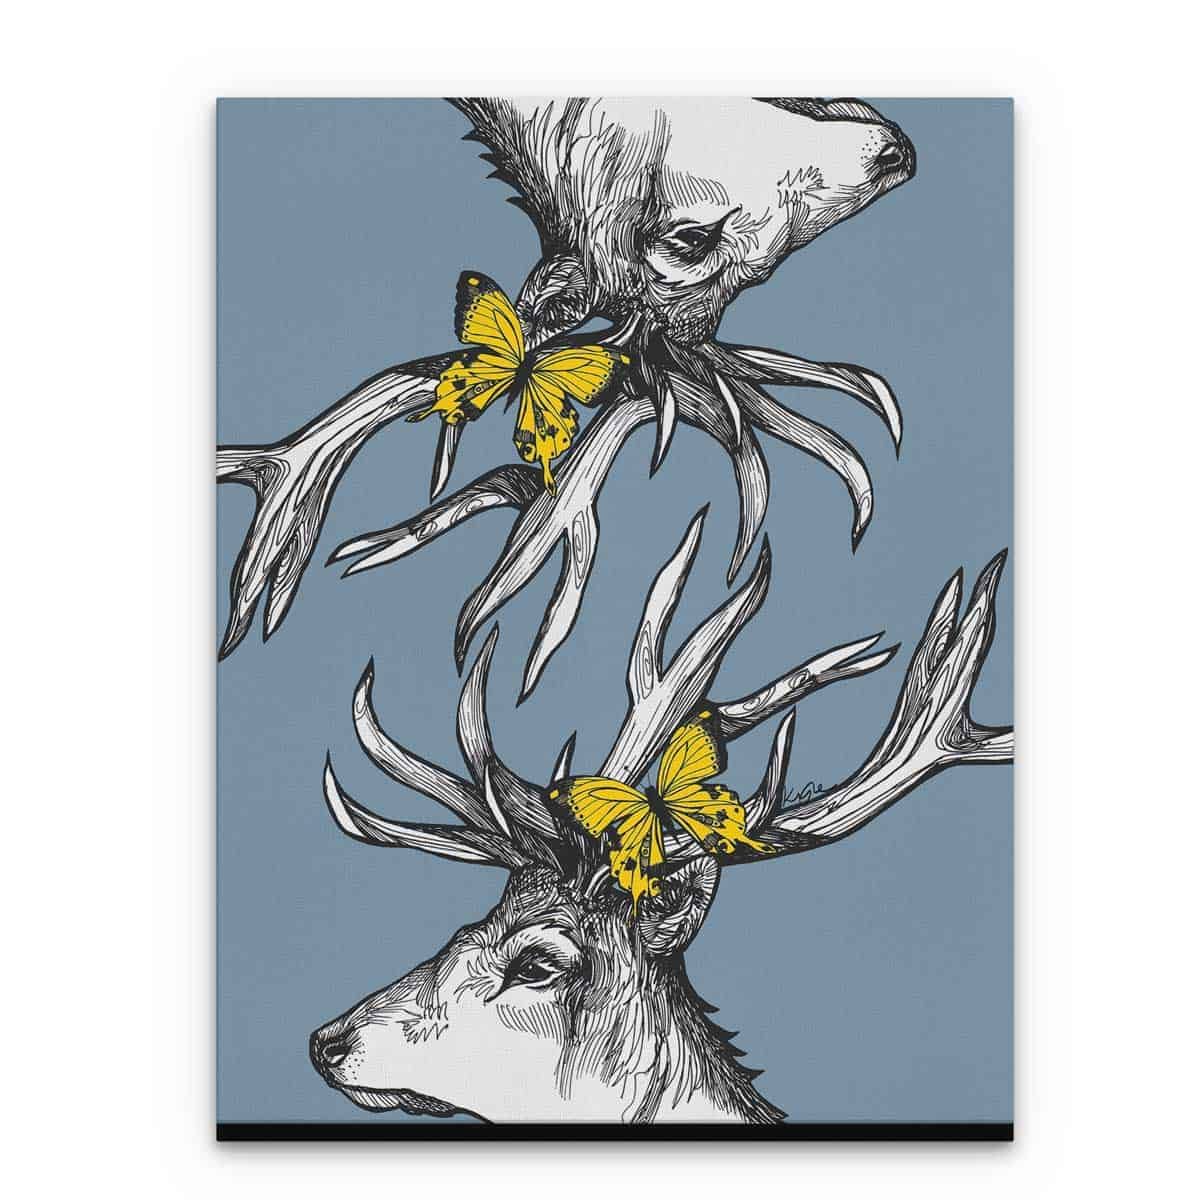 Gillian Kyle Scottish Art Canvas and Prints Gallery, Scottish Wildlife Art, Mr Stag Scottish Deer canvas prints